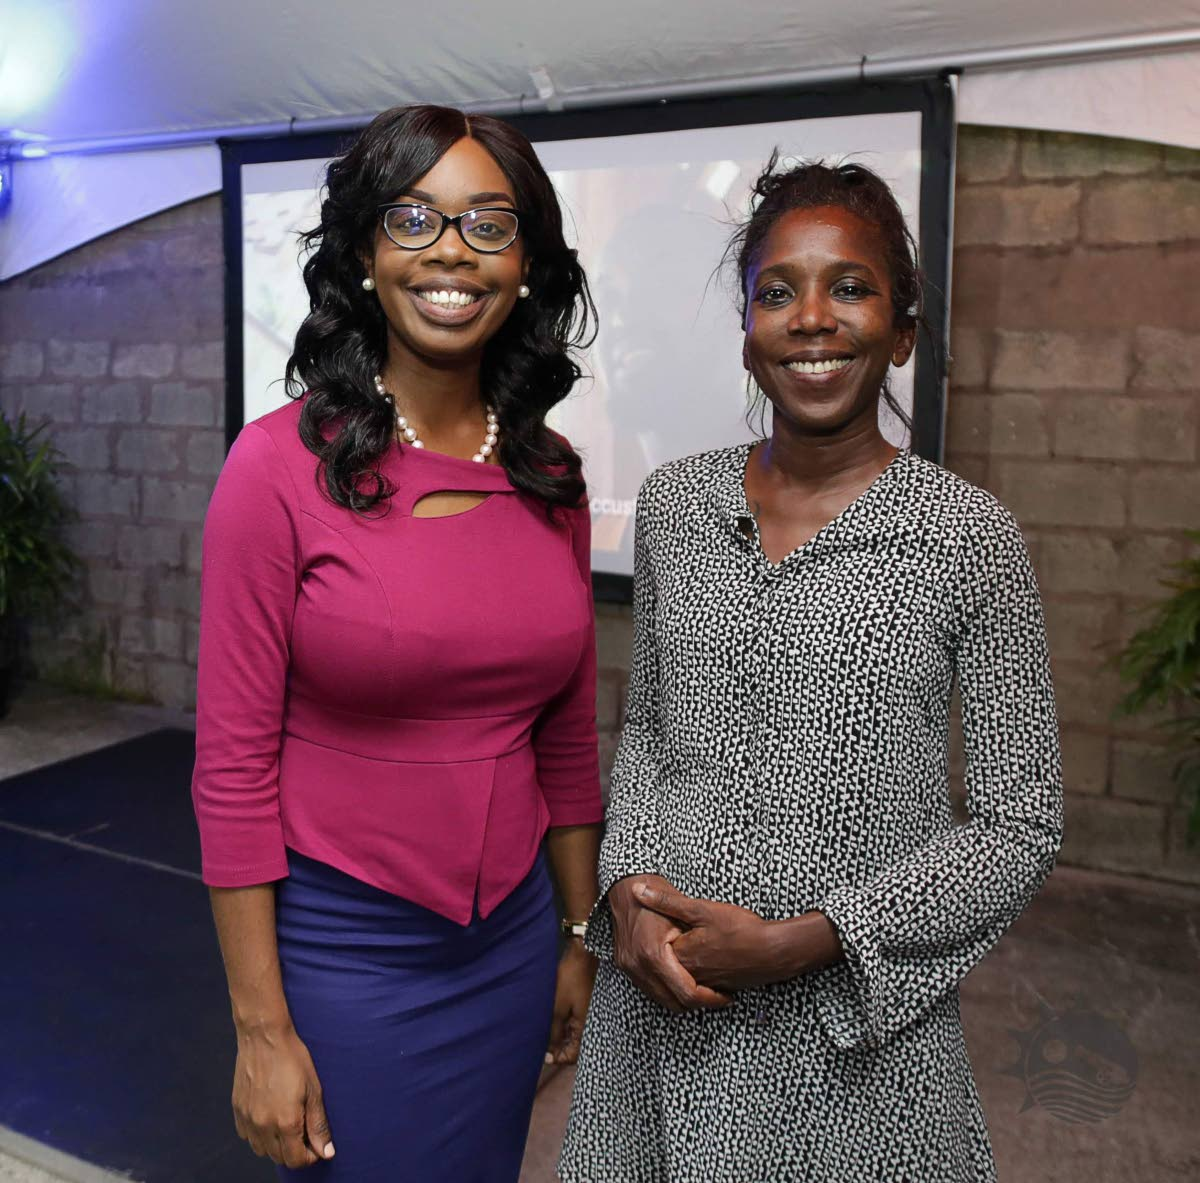 Nadine Stewart-Phillips, Secretary for the Division of Tourism, left, with Melvina Harvard, programme facilitator at the launch of the Tobago Rural Film Initiative last Wednesday at the division's compound Sangster's Hill, Scarborough.  Photo by THA